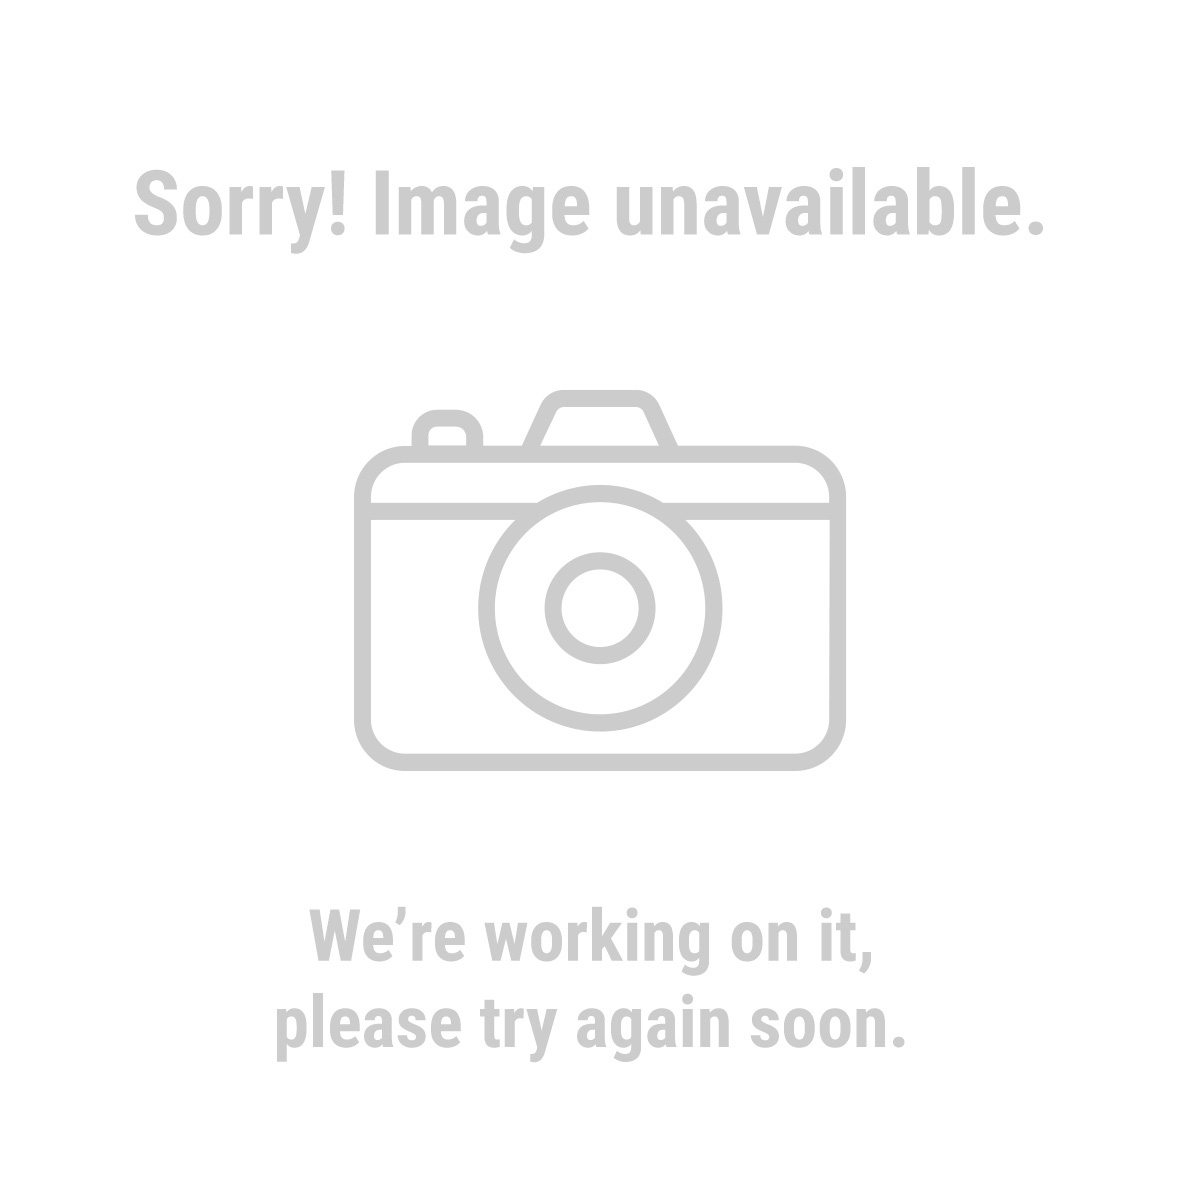 Central Forge 41711 3-In-1 Heavy Duty Tile Cutter